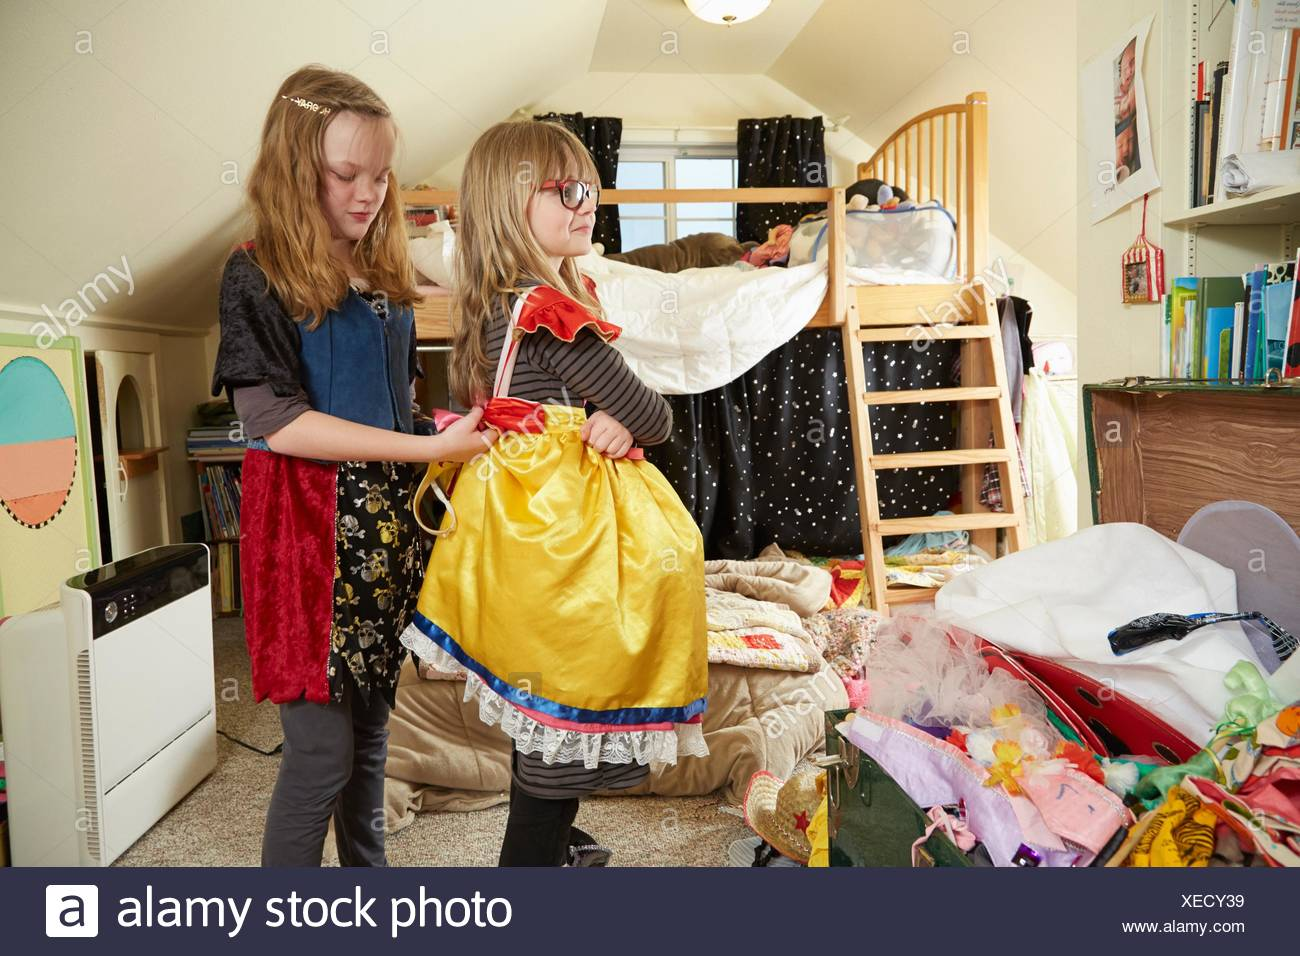 Two sisters playing dress up, One helping the other fasten dress - Stock Image